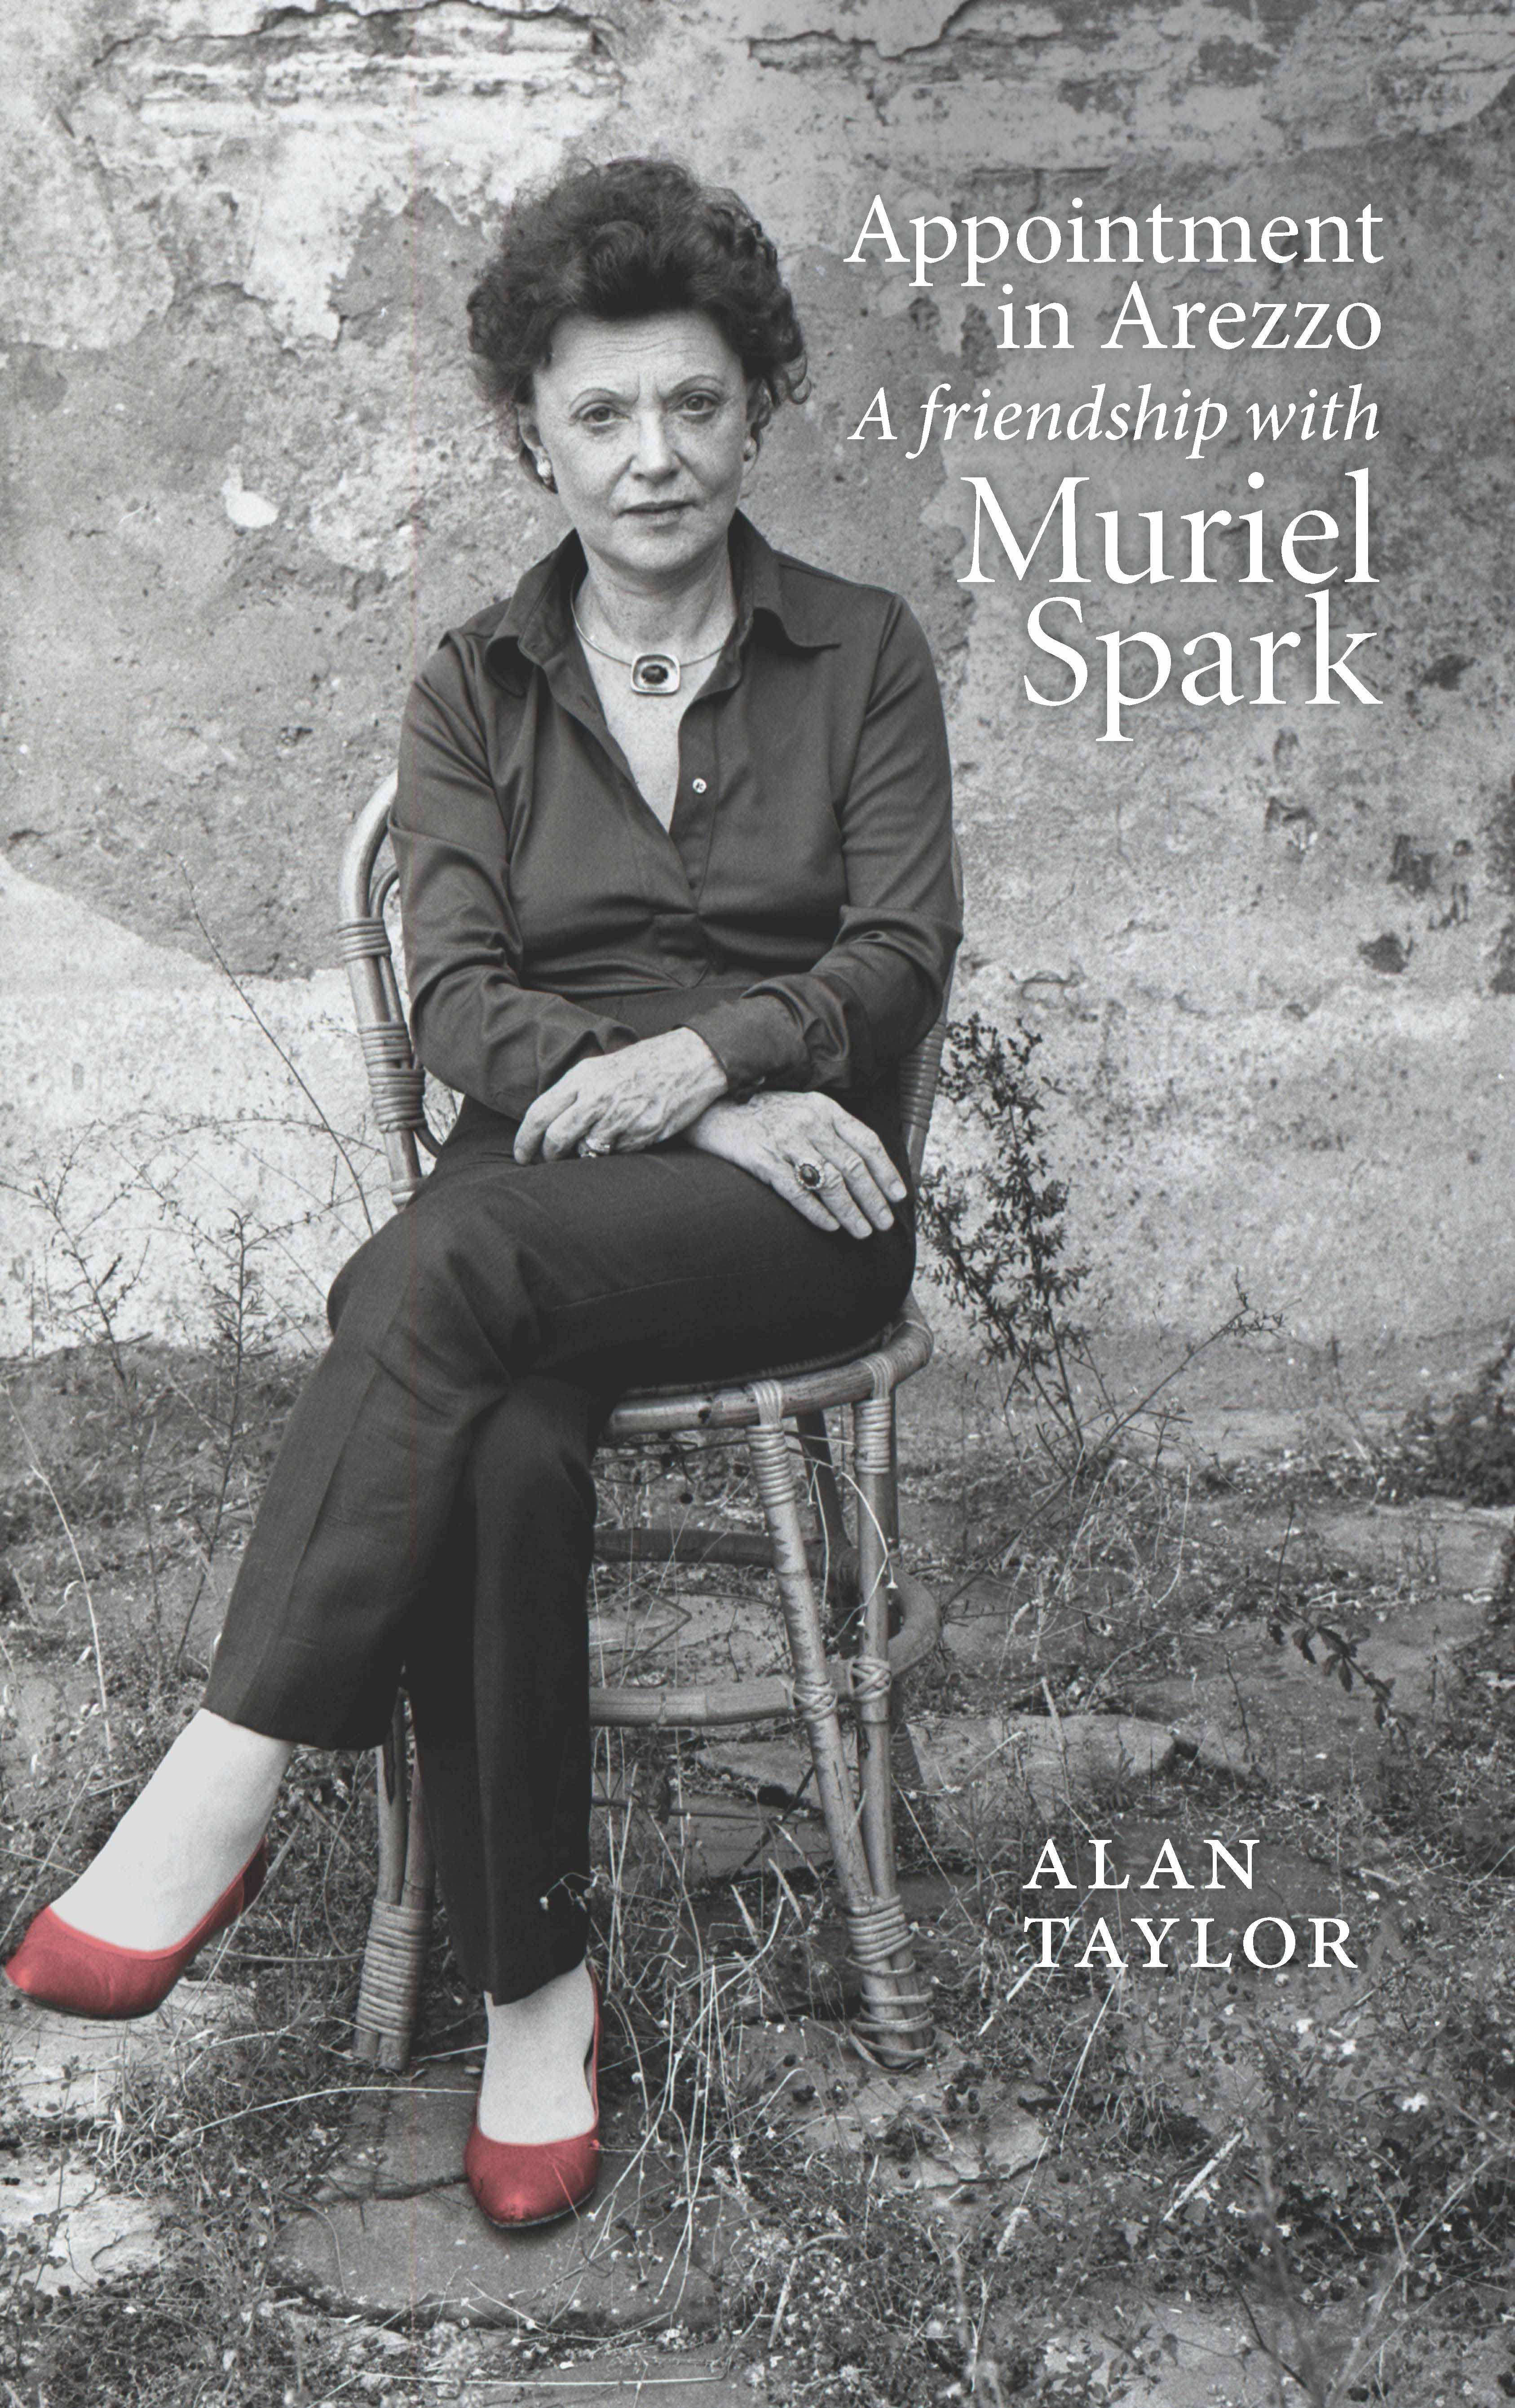 Book cover with image of Muriel Spark seated